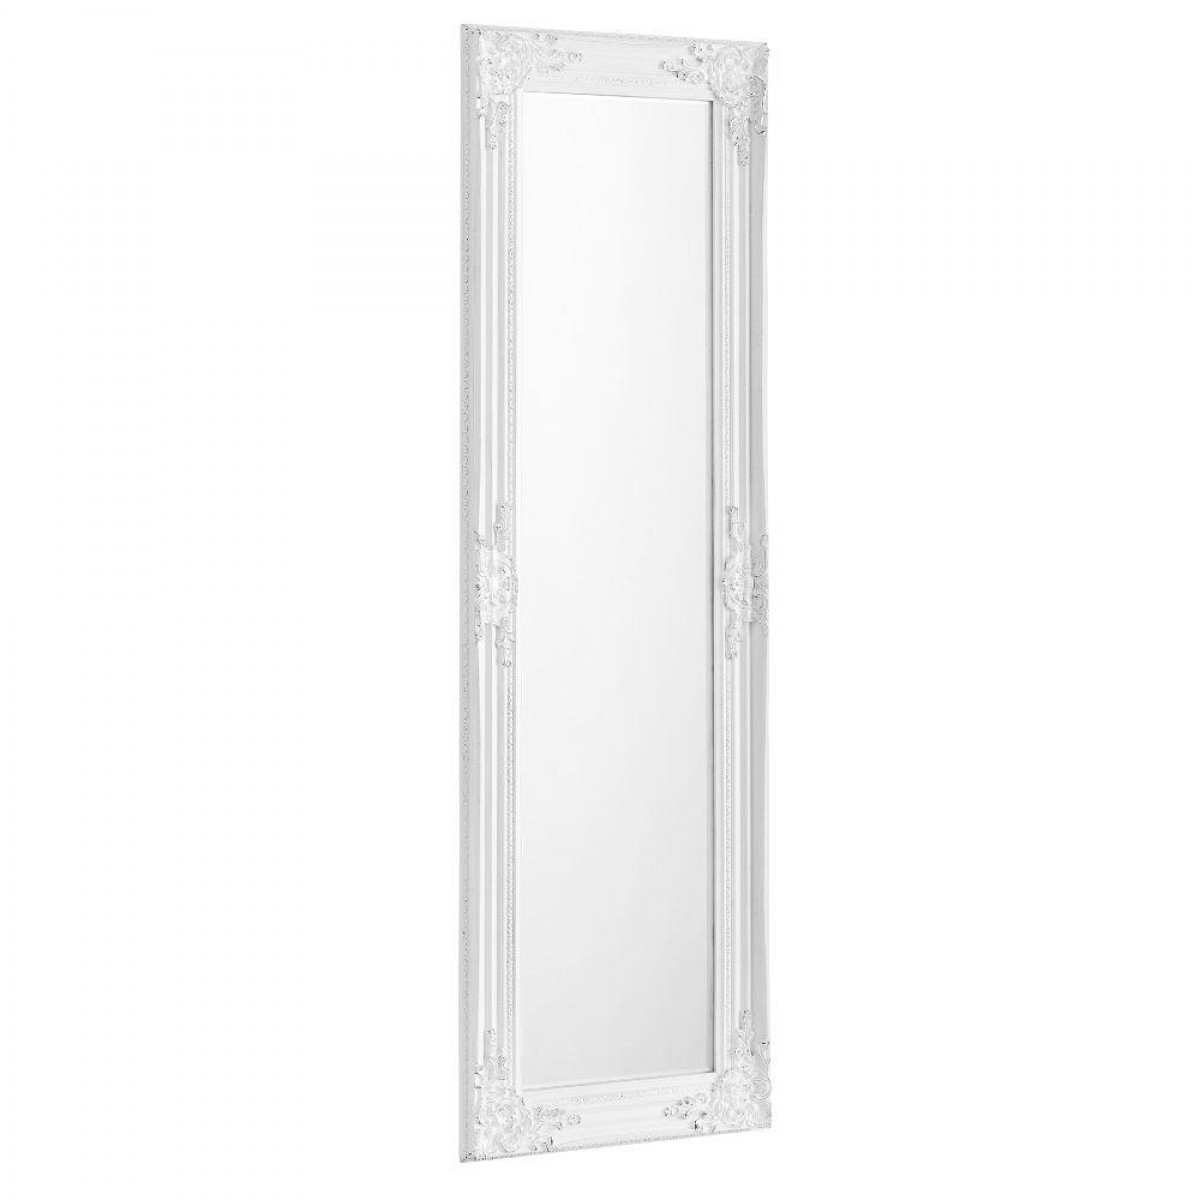 Palais White Dress Mirror - 40 cm x 130 cm